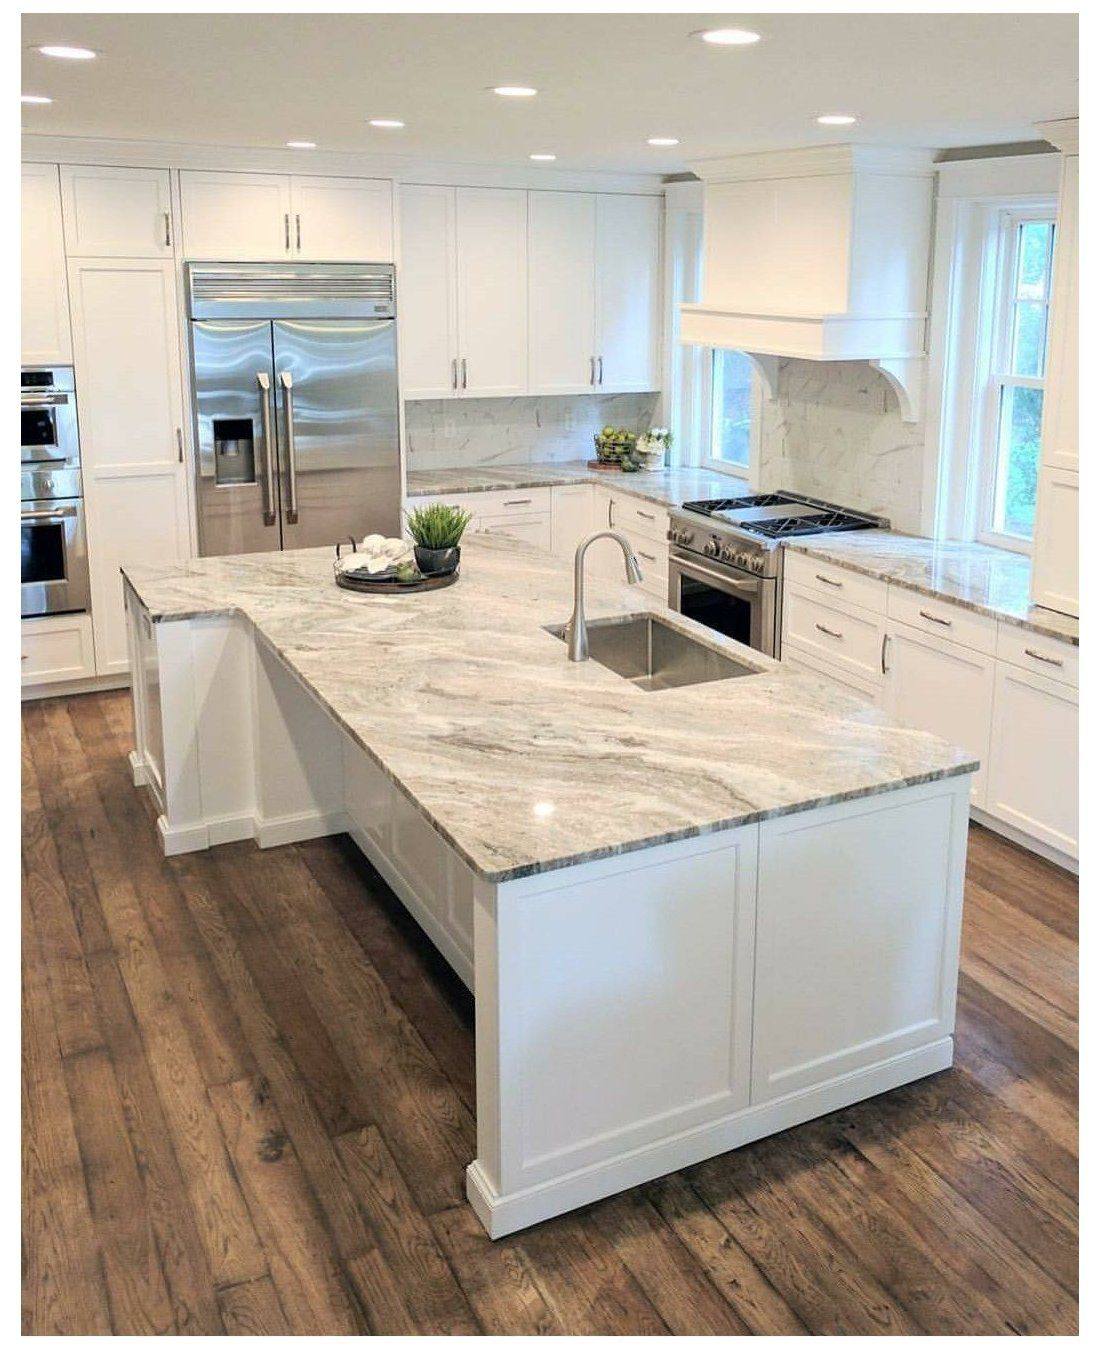 12 Resplendent Concrete Counter Top Master Bath Ideas Fetching Concrete Counter Top Master Bat In 2020 White Kitchen Design Kitchen Design Small Kitchen Remodel Small